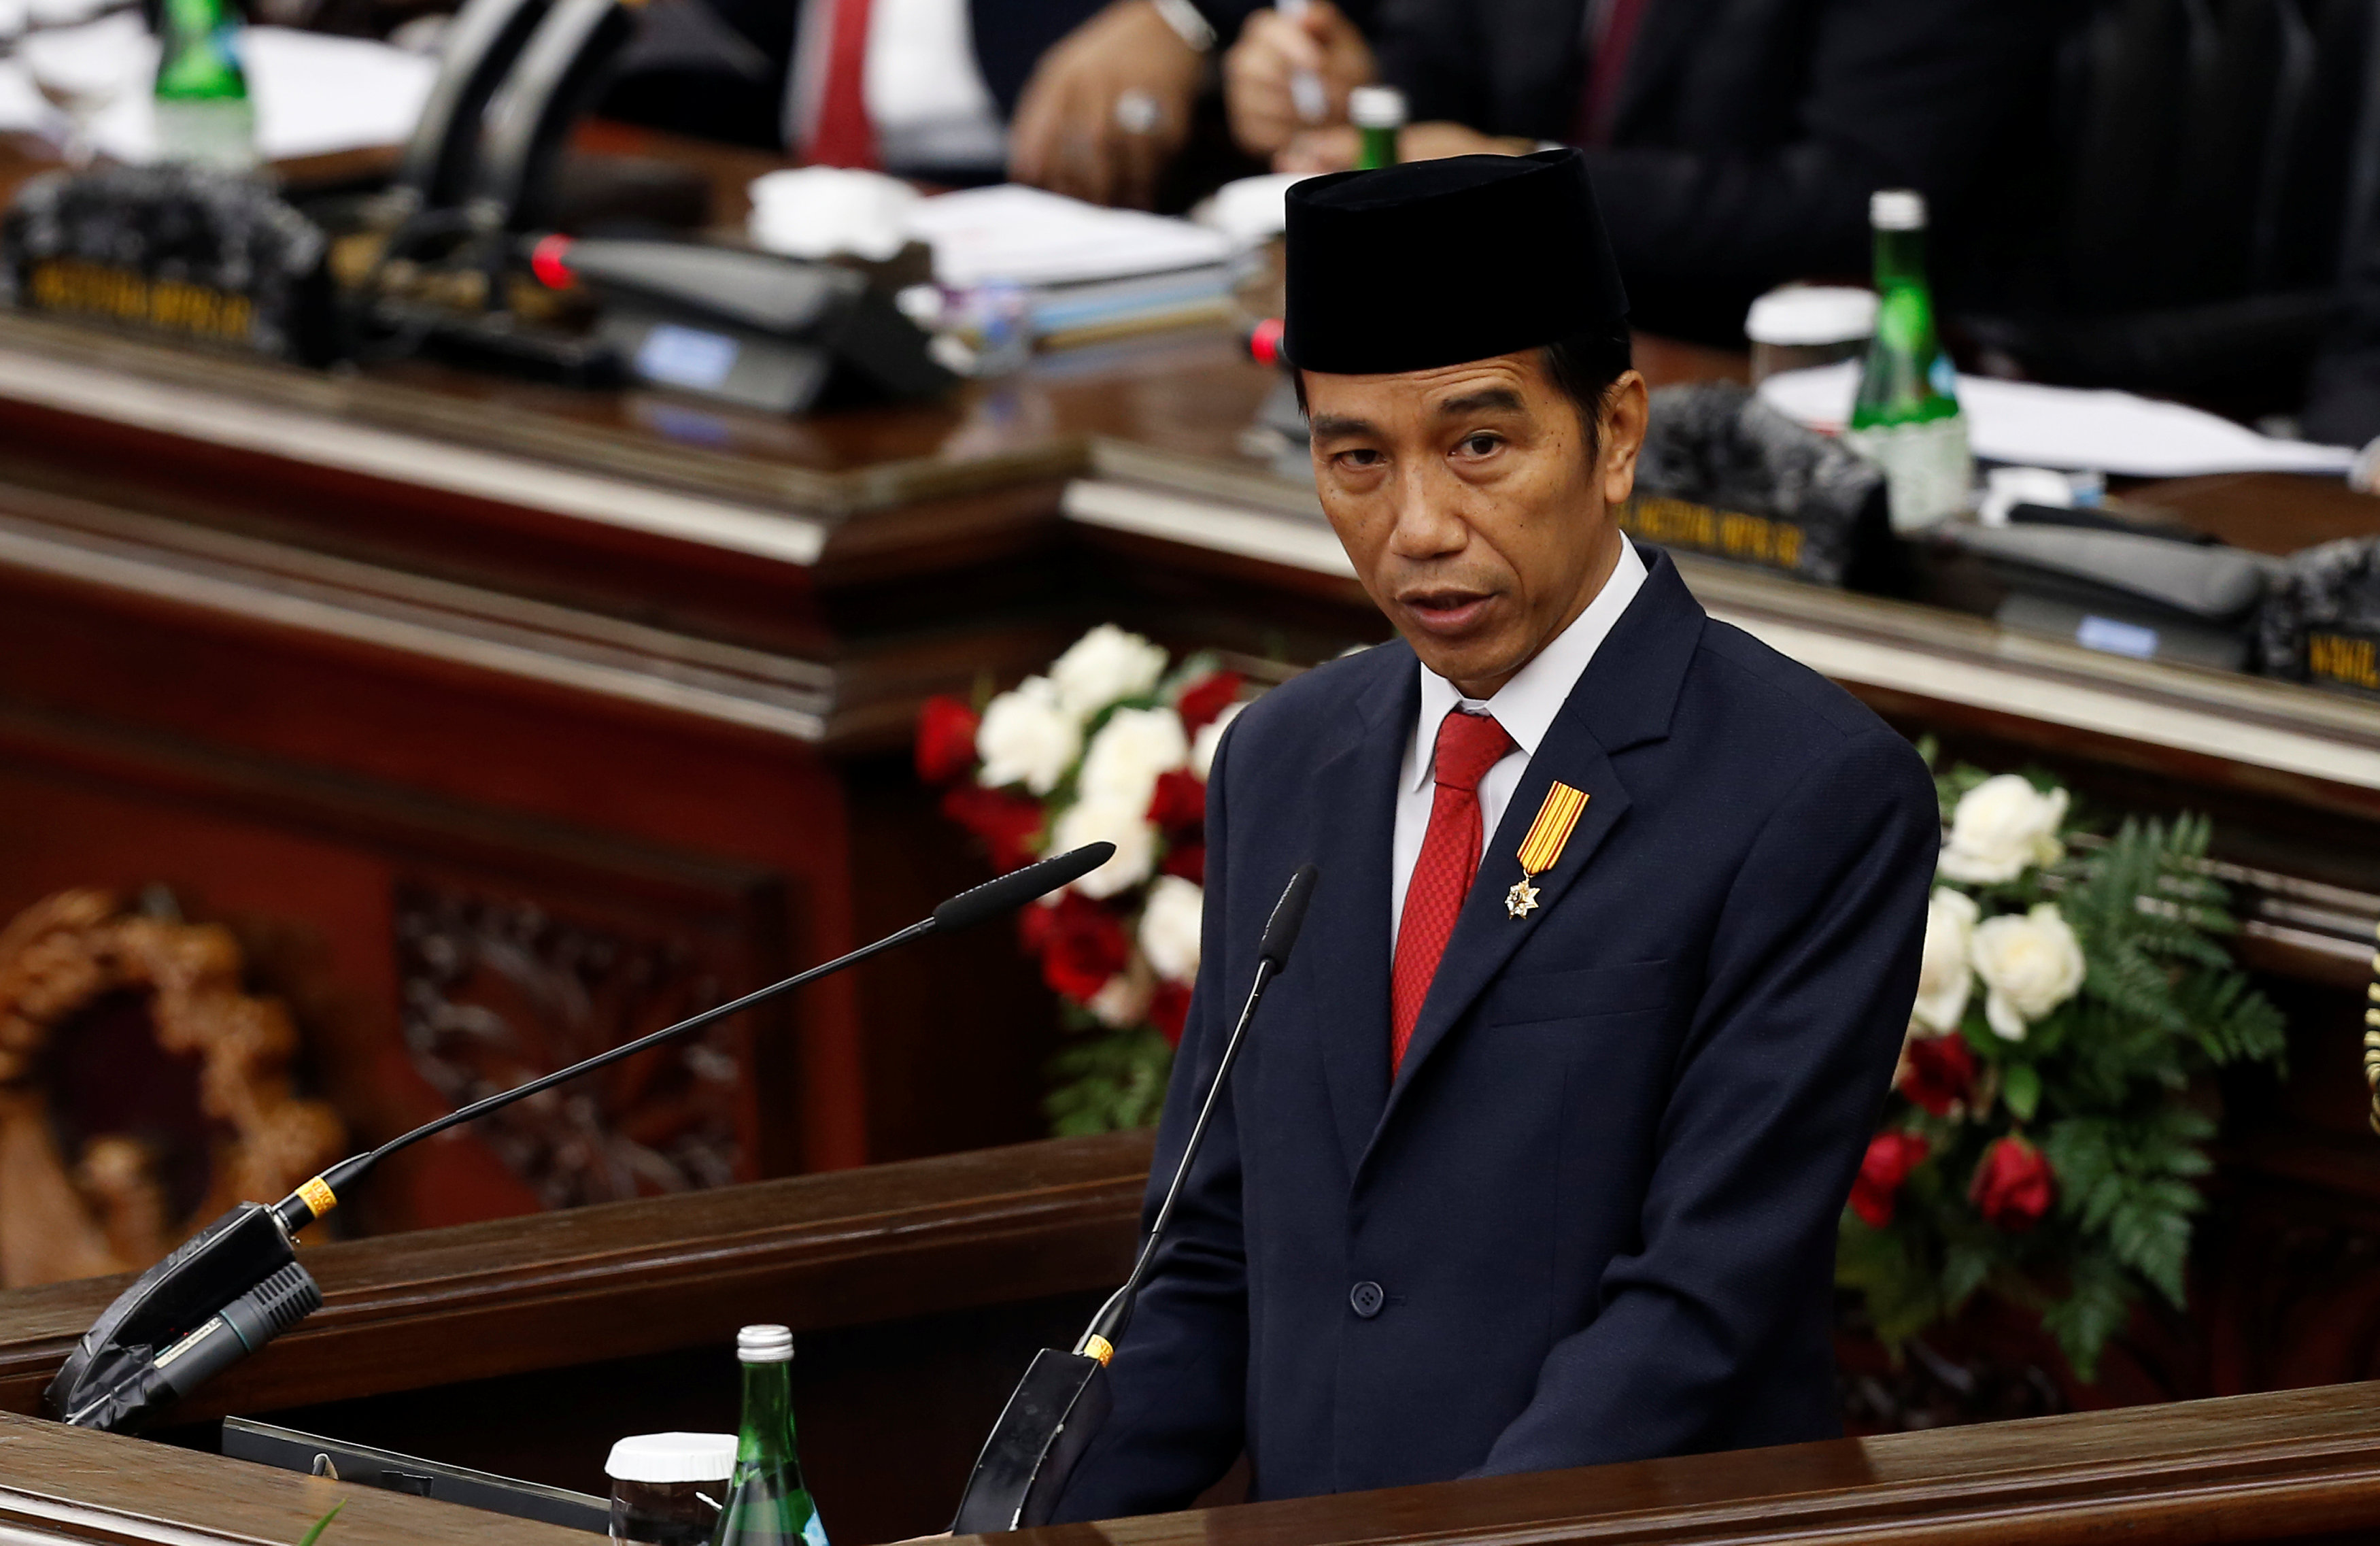 Indonesia's Widodo introduced a series of tough punishments for child sex offenders in May through an emergency decree, including chemical castration, following an outcry over the fatal gang-rape of a schoolgirl. — Reuters pic